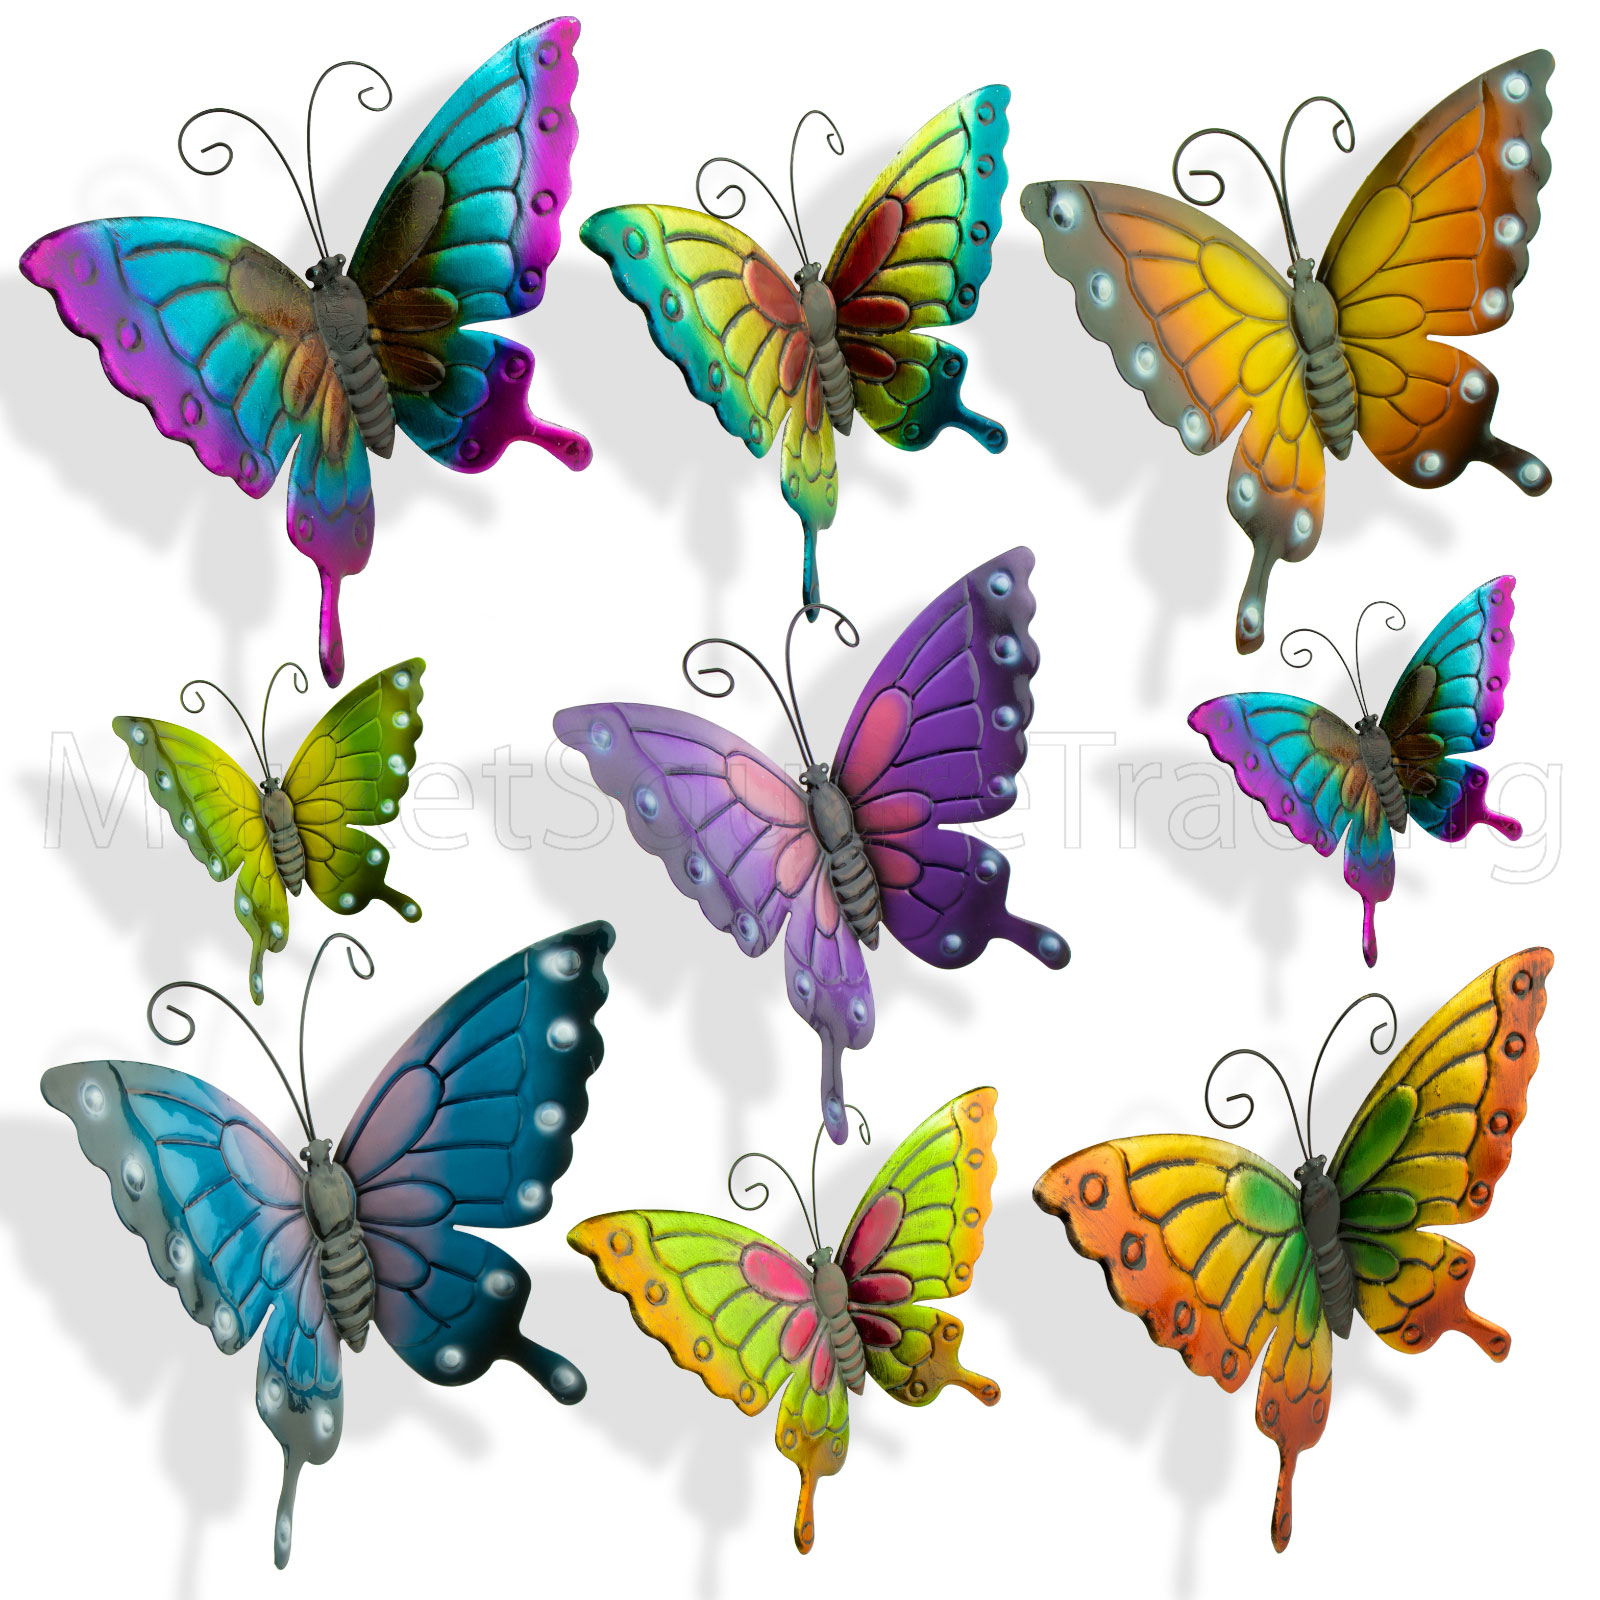 BUTTERFLIES LARGE XLARGE PAINT COLOURED METAL WALL ART OUTDOOR GARDEN DECORAT